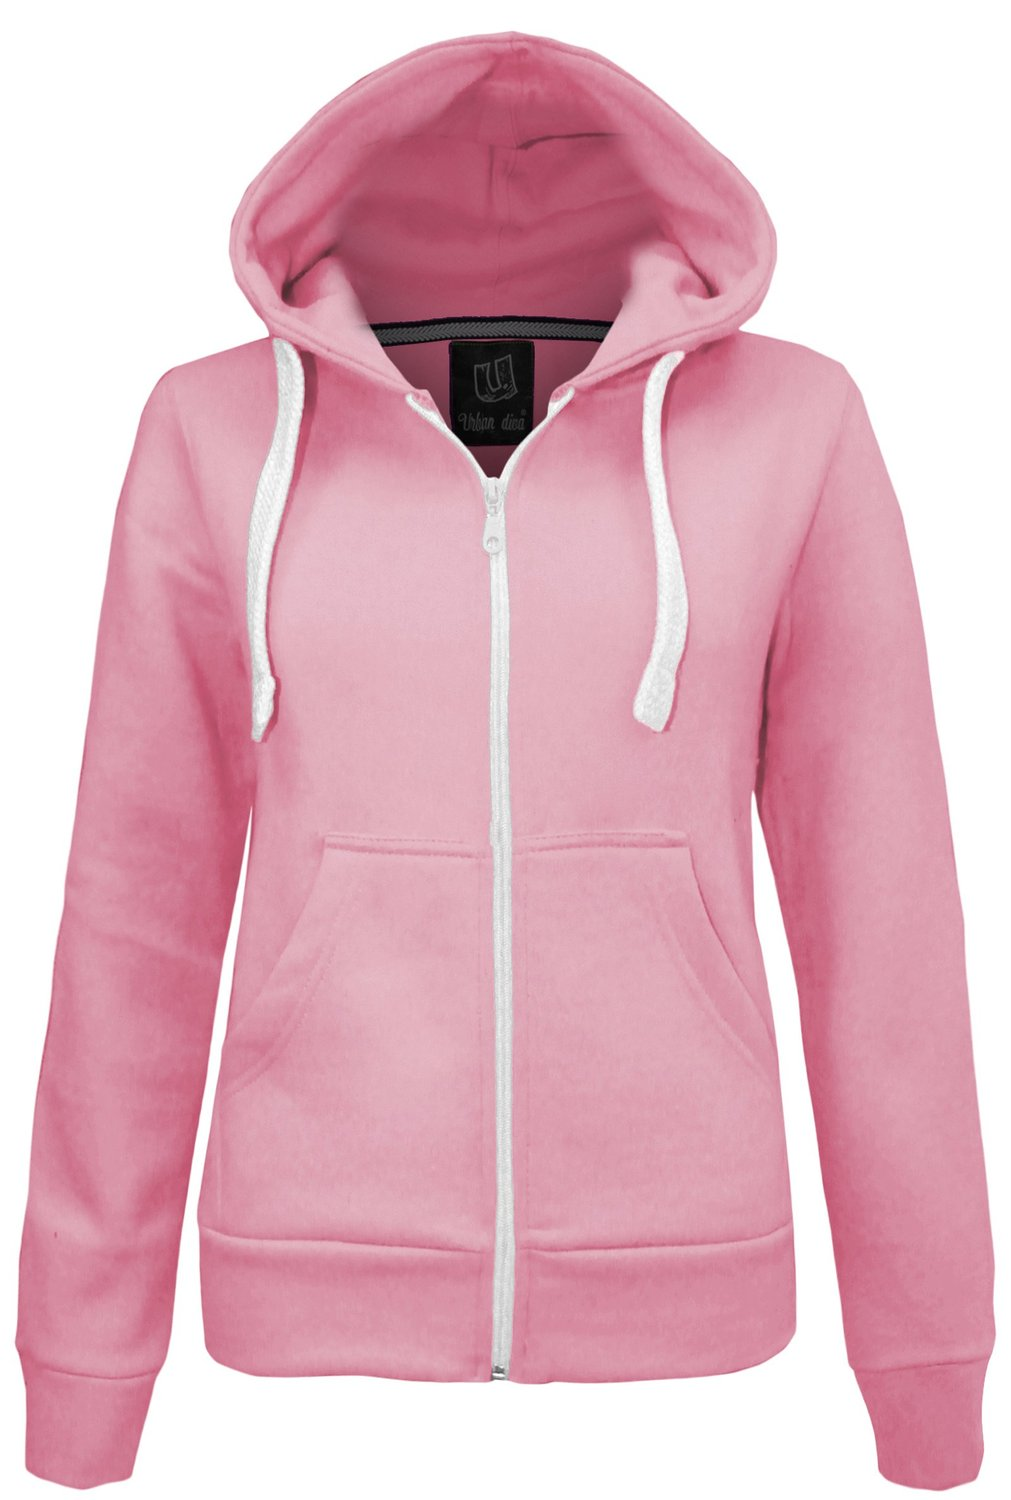 Candy Floss Ladies Hoodie Sweatshirt Fleece Jacket Top